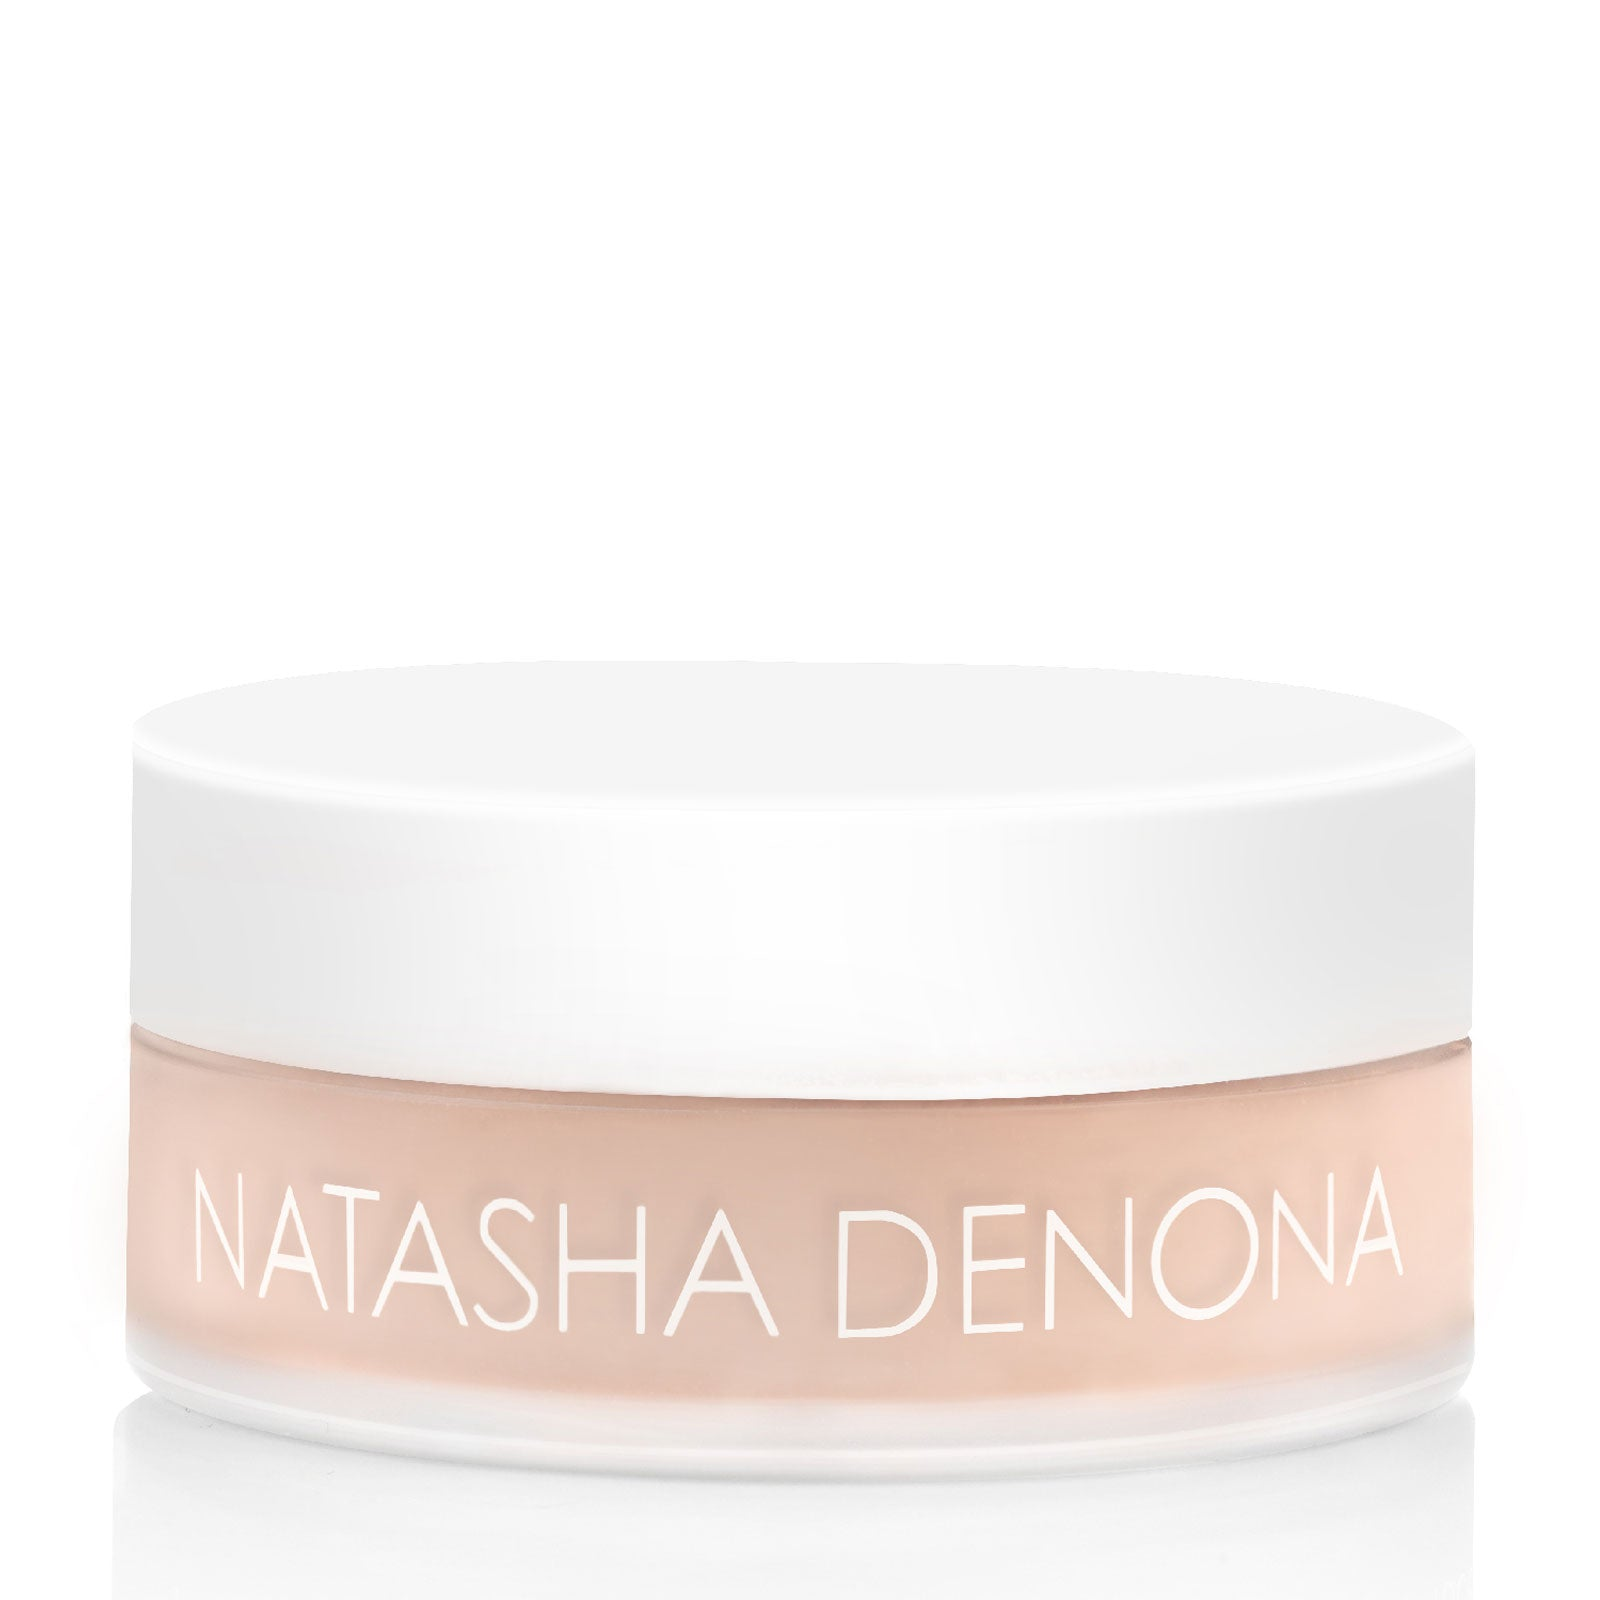 Natasha Denona Invisible HD Face Powder 15g